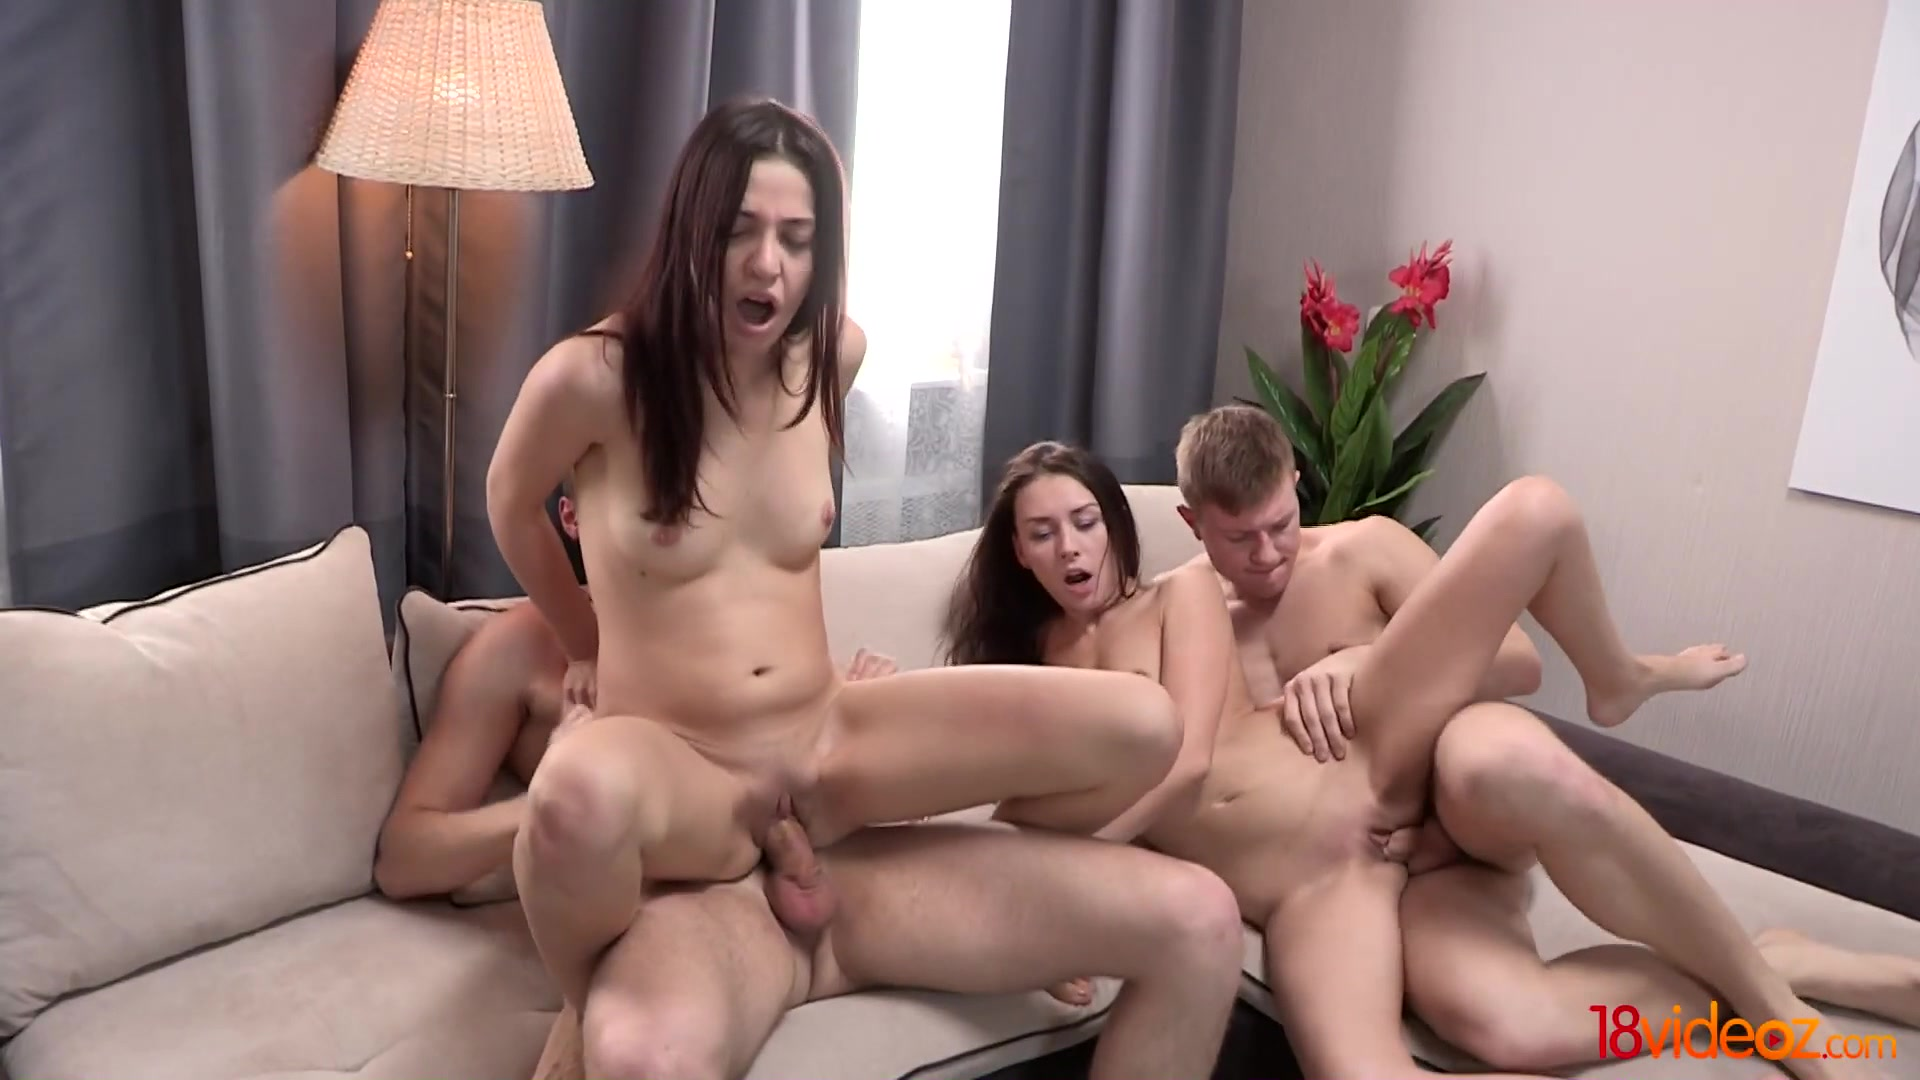 18 Videoz - Lily Cat - Chicks get the sex party going How to find someone specific on a hookup site